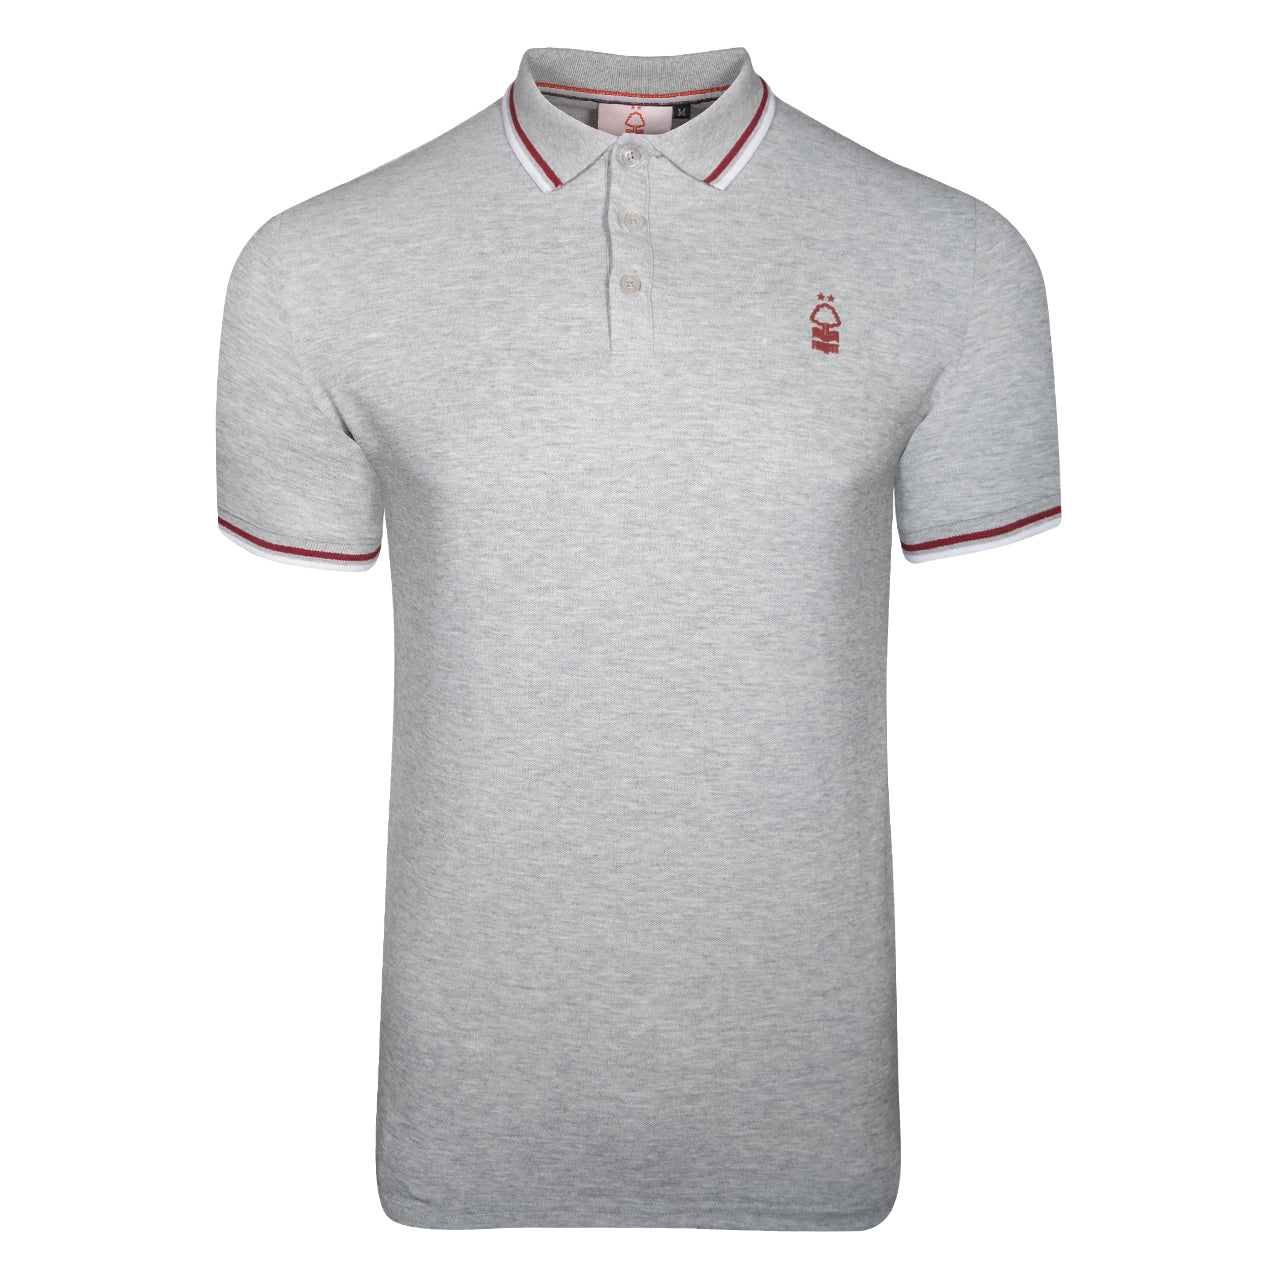 NFFC Junior Grey Raised Rubber Crest Polo